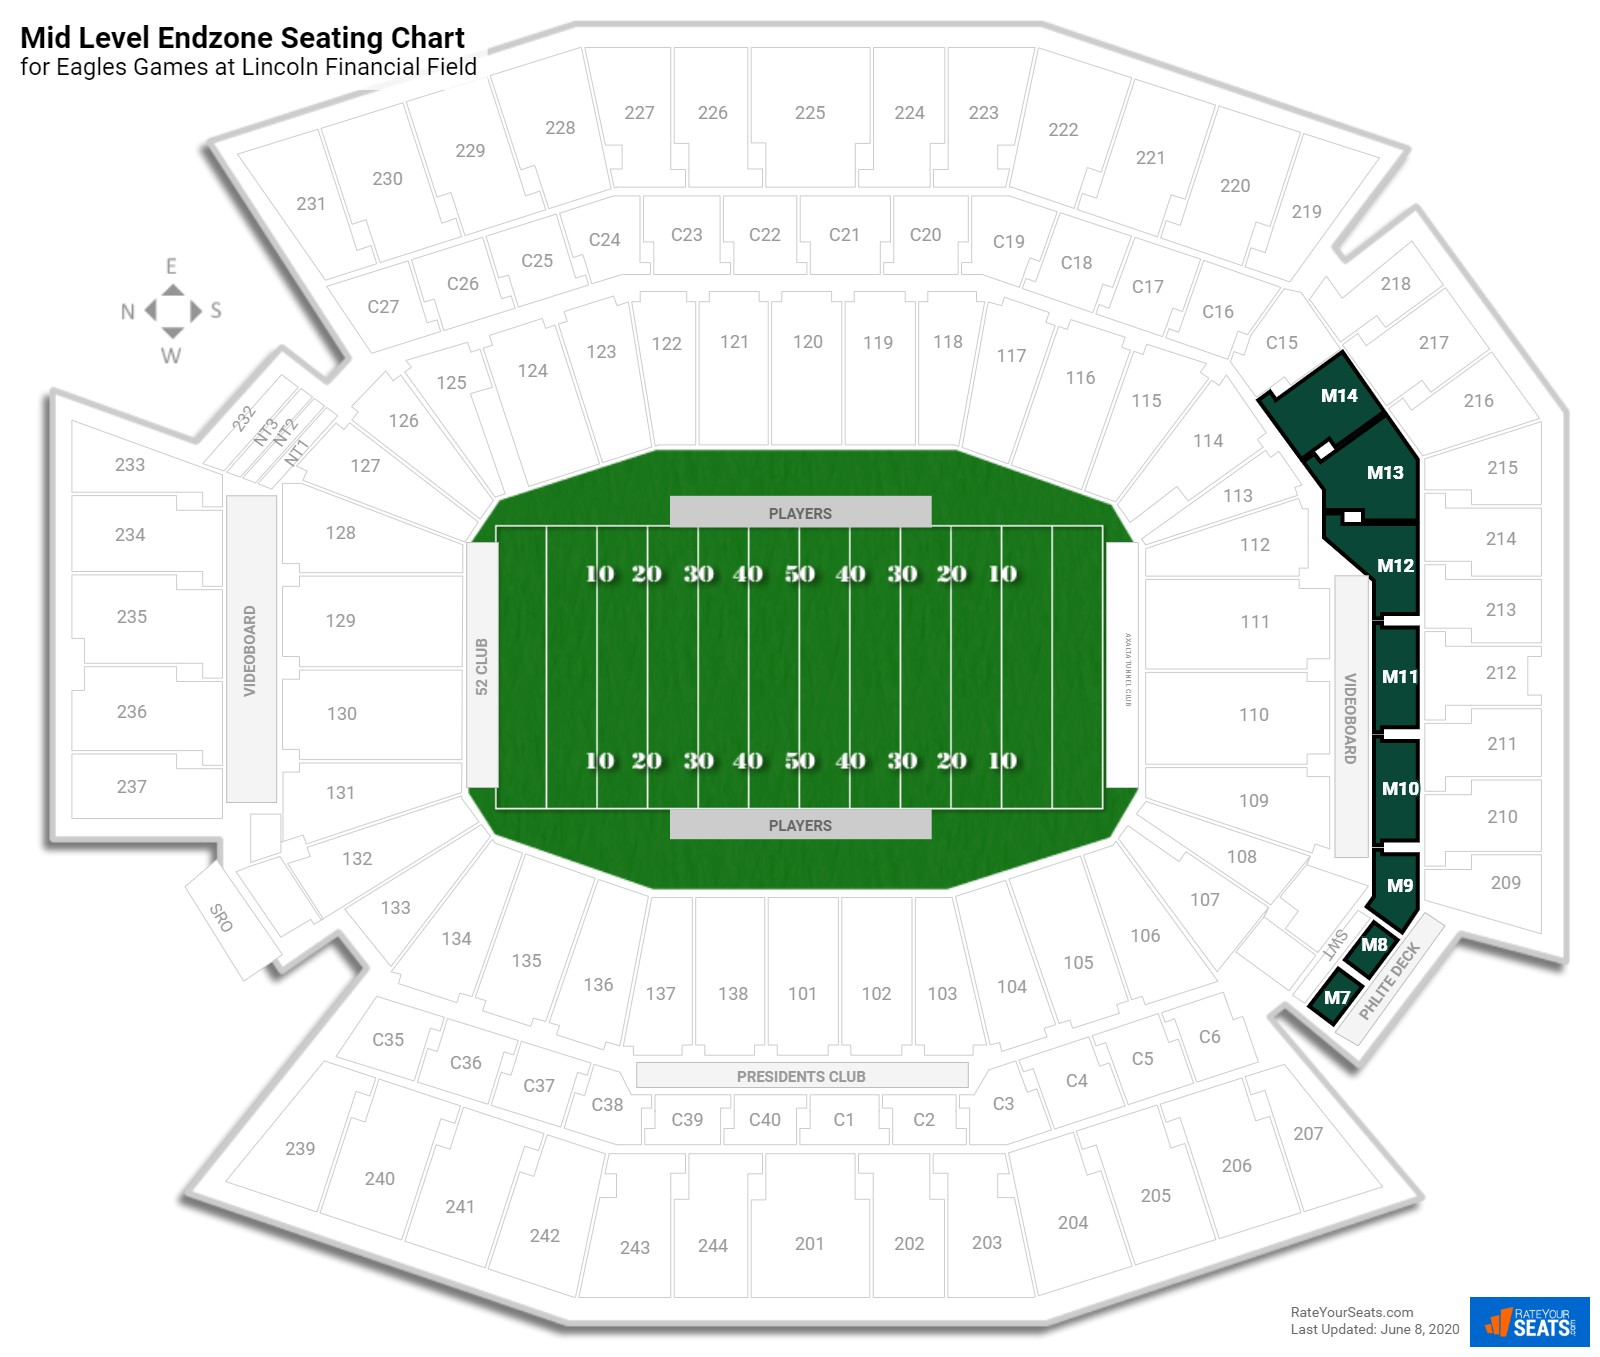 Lincoln Financial Field Mid Level Endzone seating chart